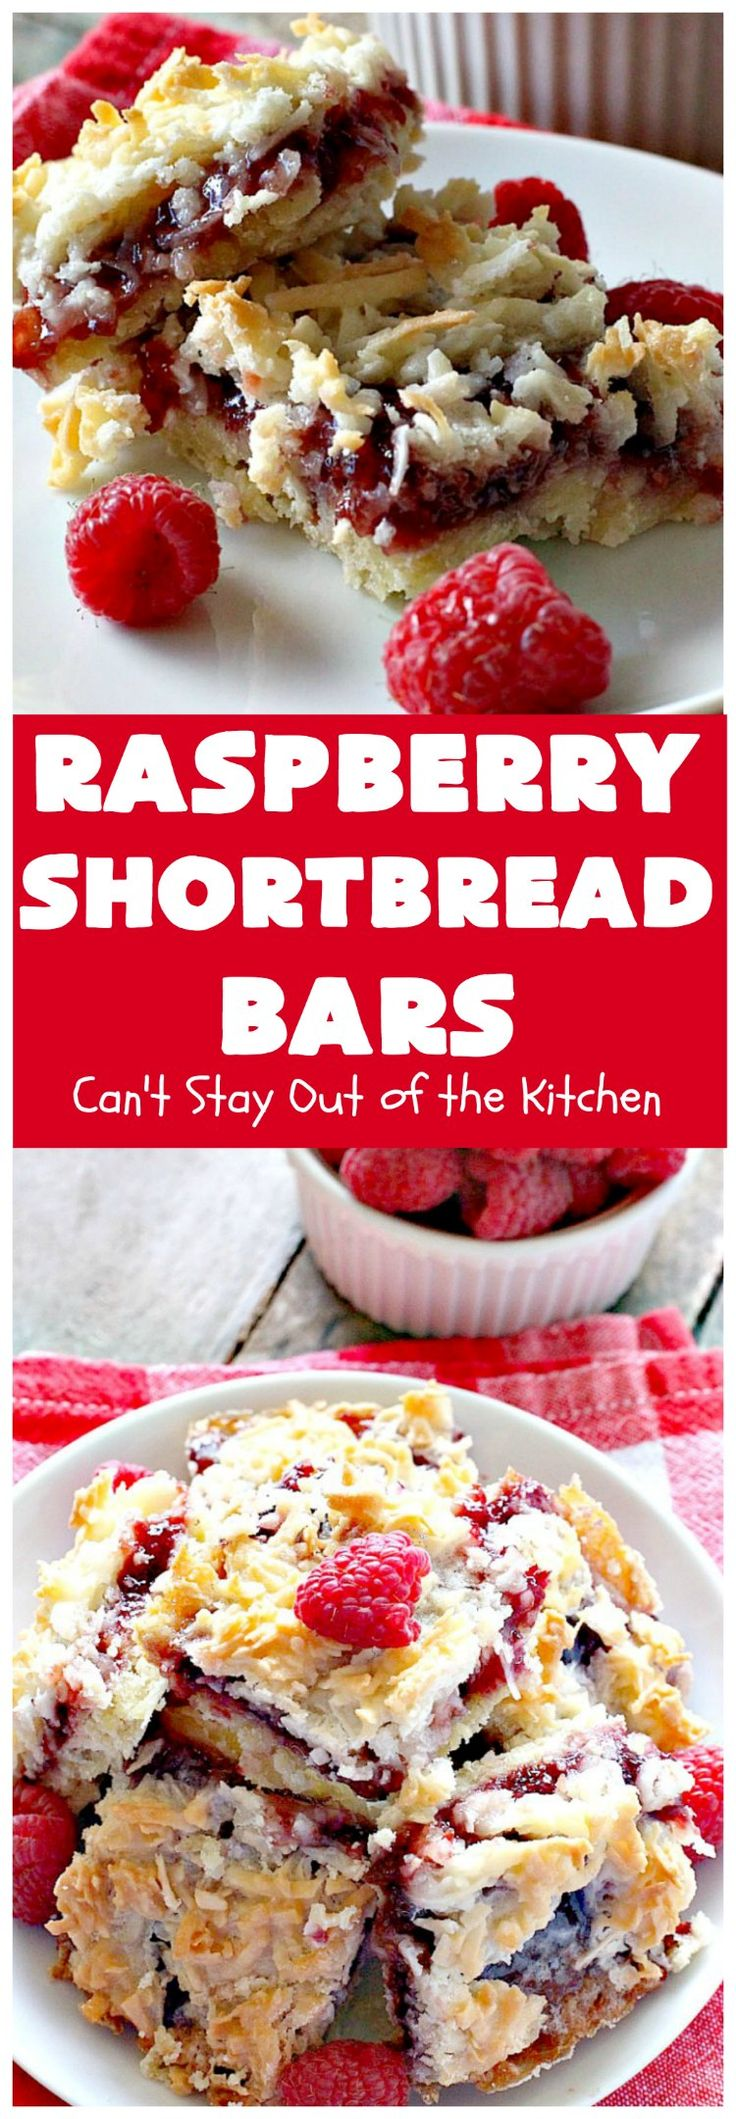 Raspberry Shortbread Bars | Can't Stay Out of the Kitchen | these cookie type bars are absolutely divine! They have a shortbread crust, topped with raspberry preserves & a coconut topping. You'll be drooling over every bite!